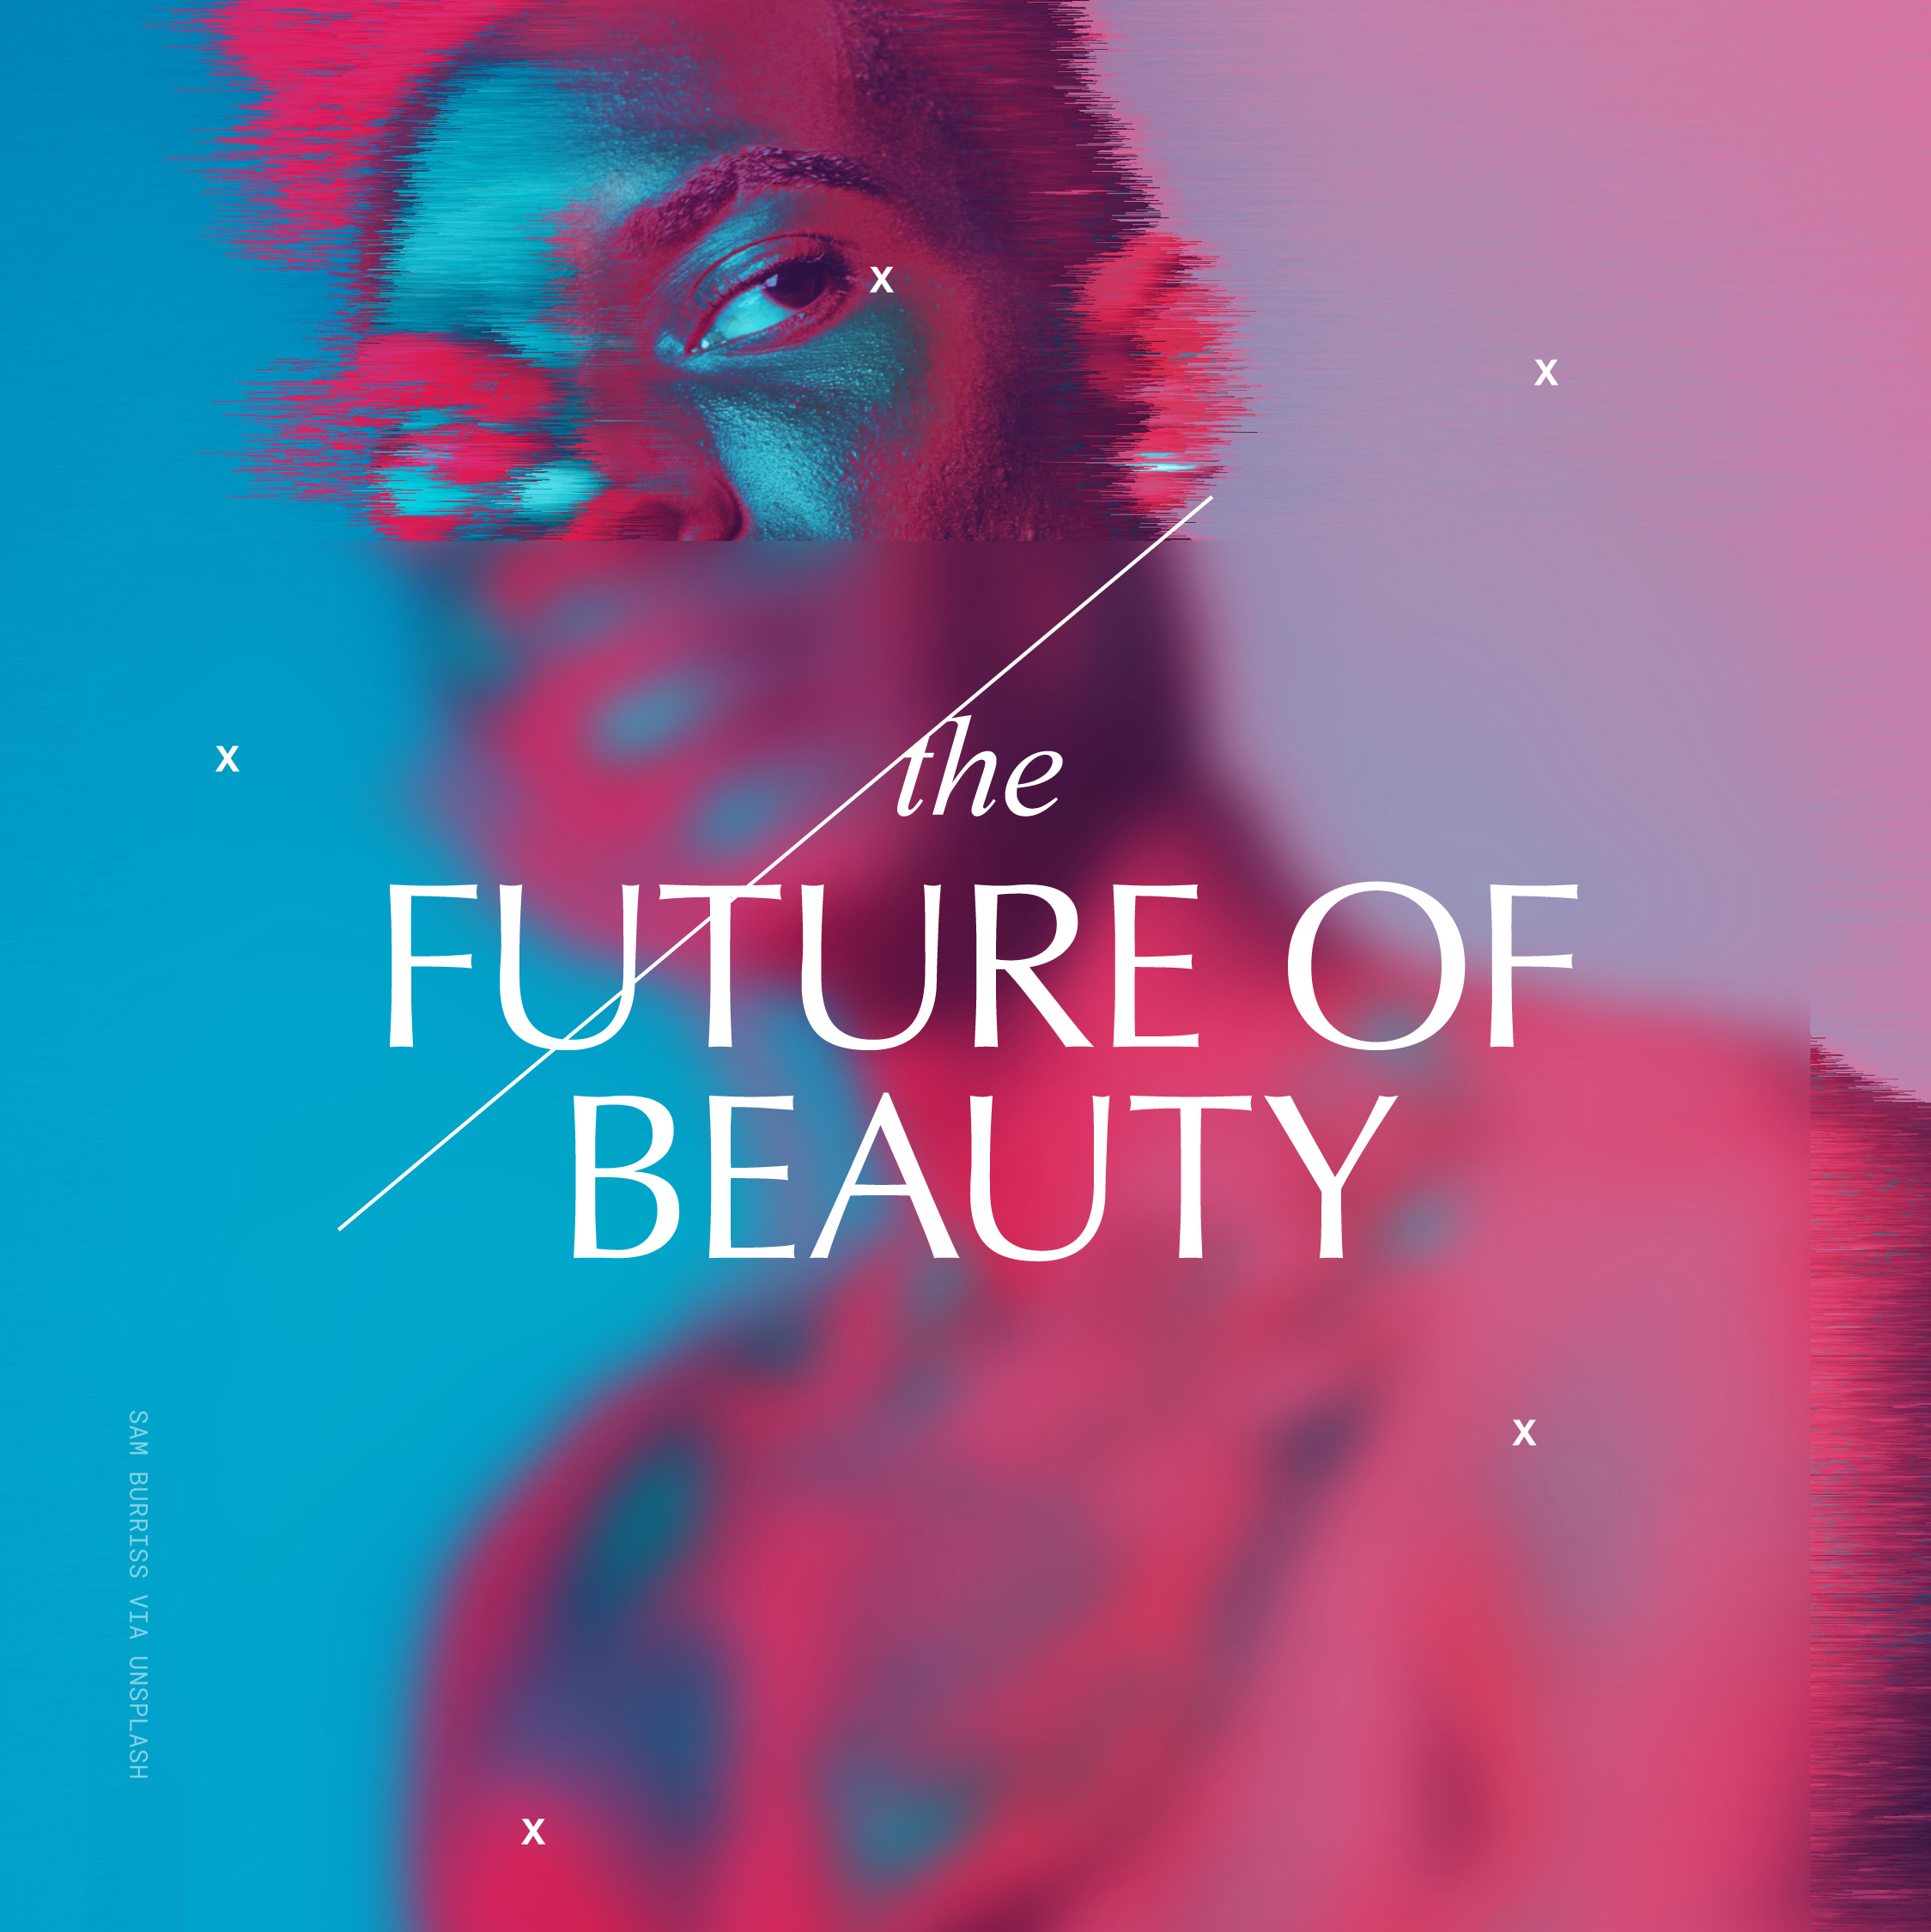 Future of Beauty_COVER-SQUARE.jpg